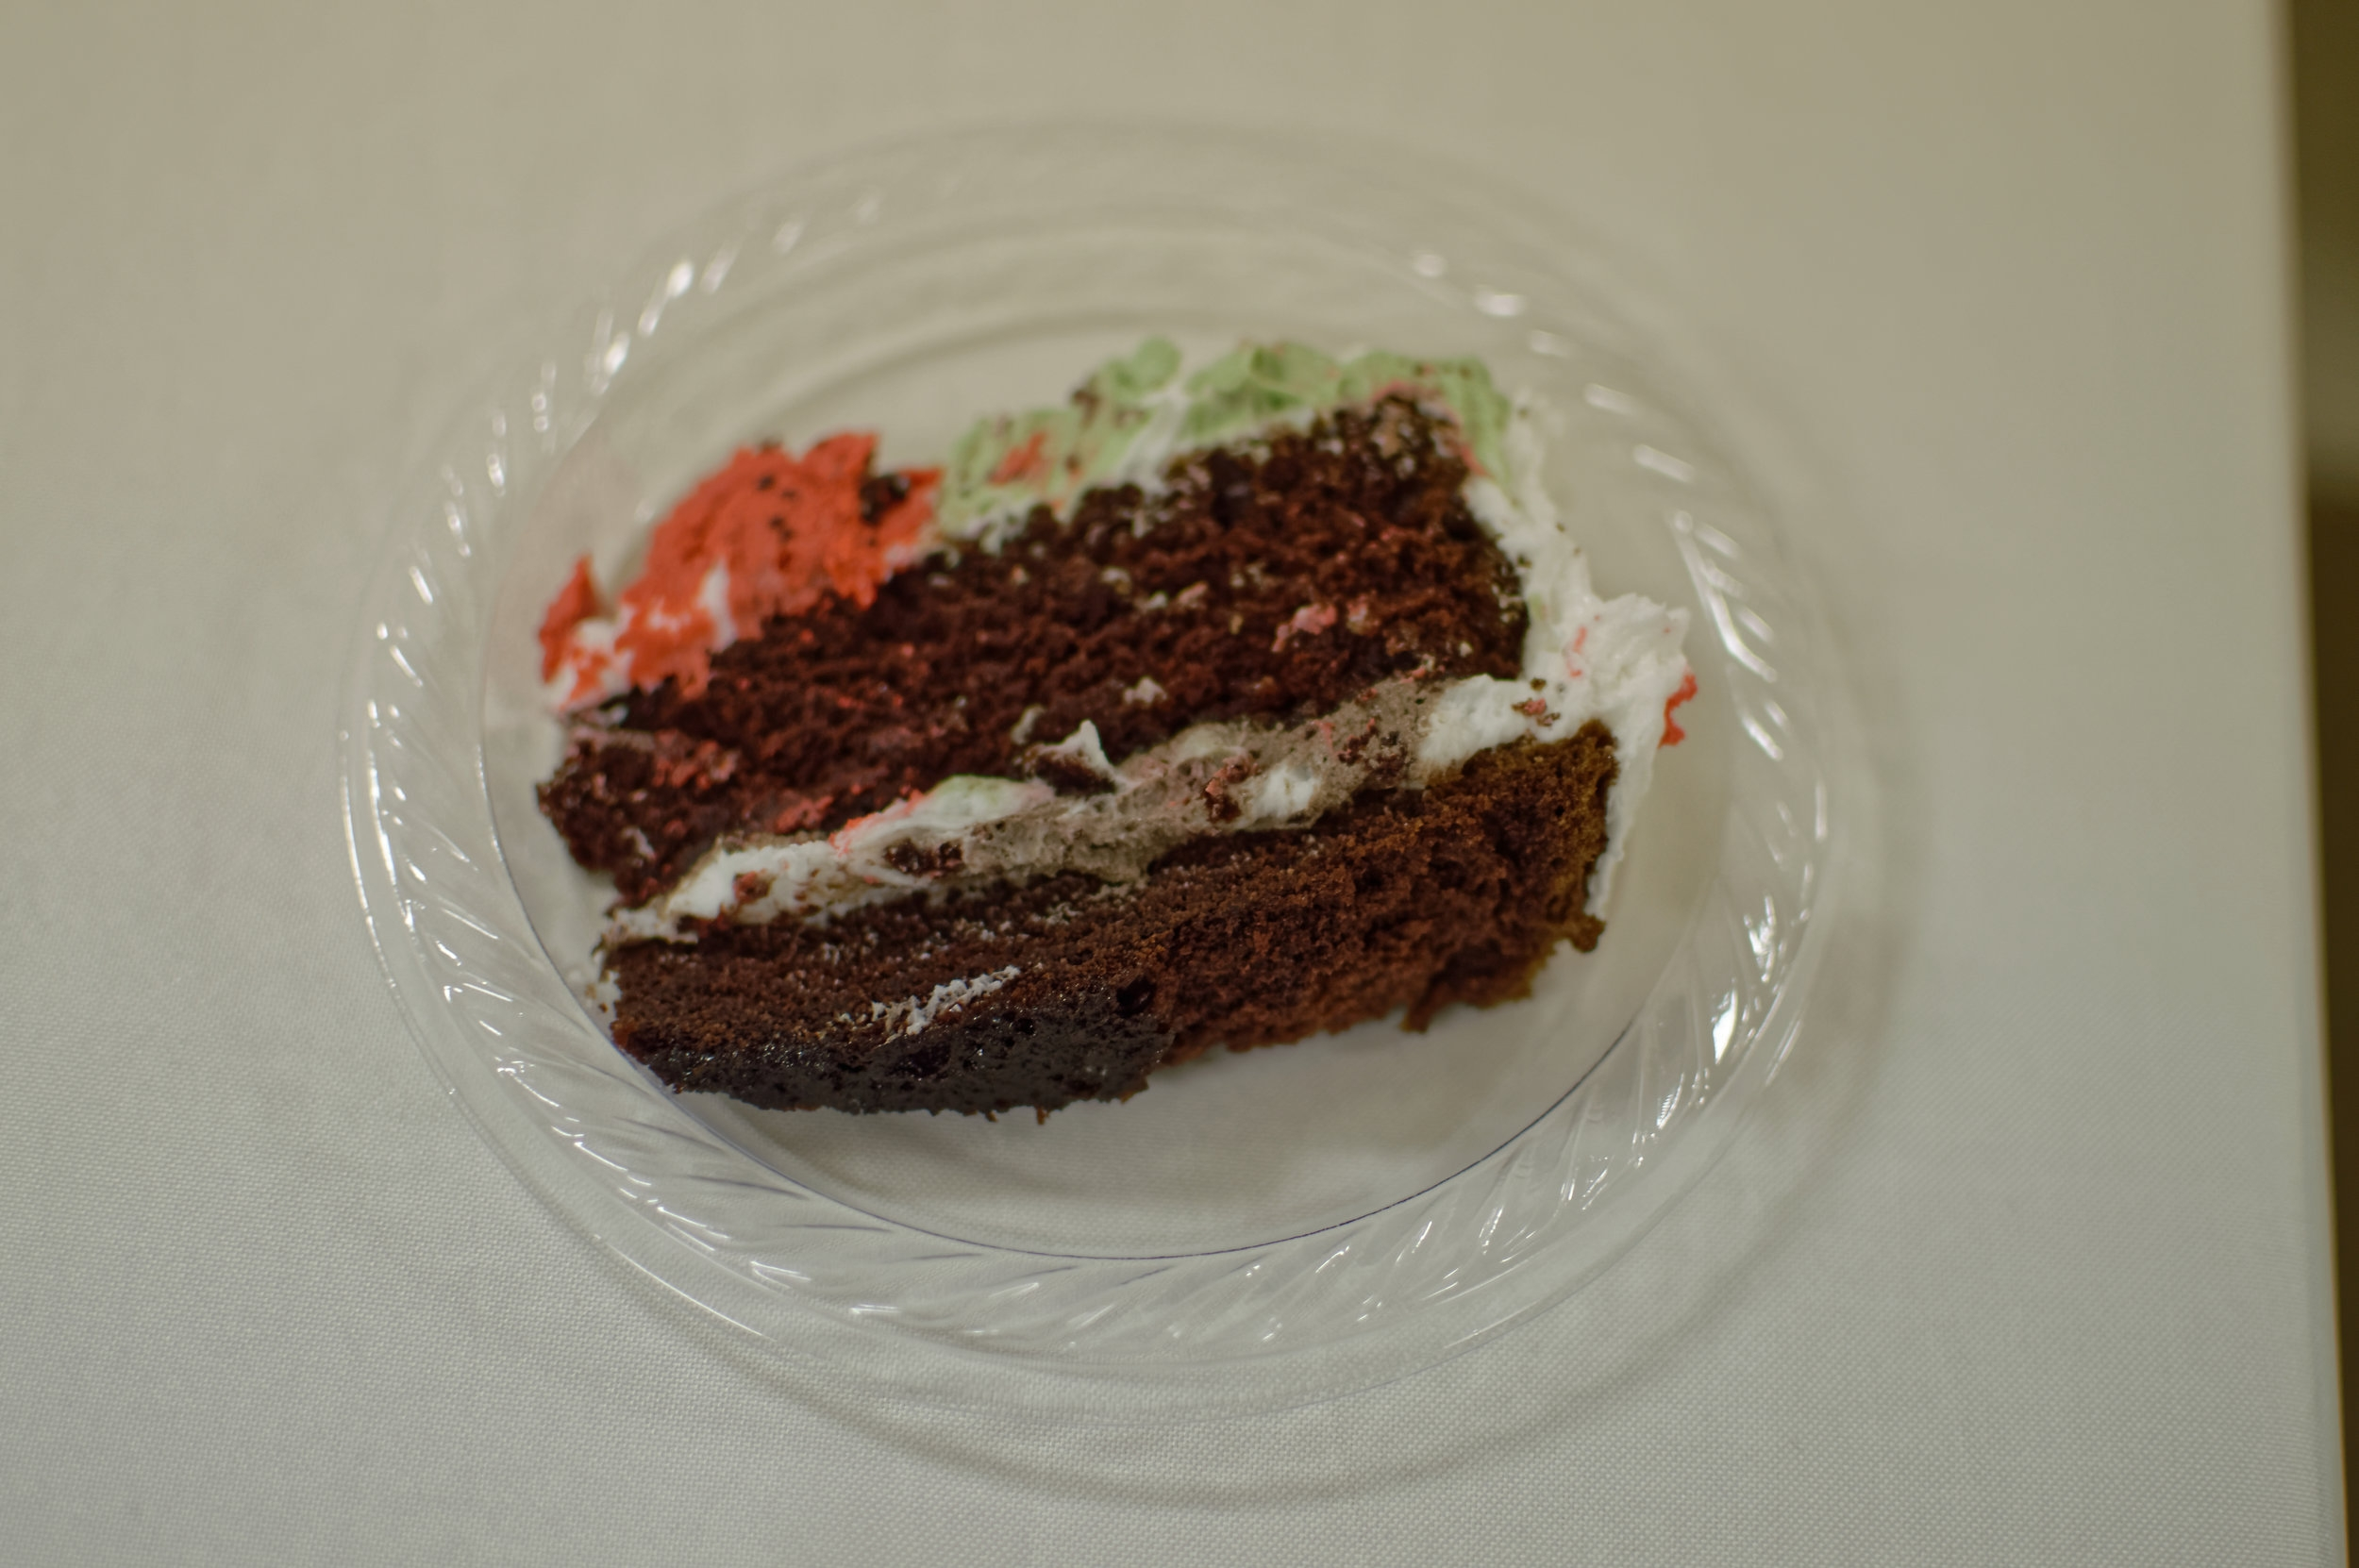 Cake made by Sr. Mary Catharine